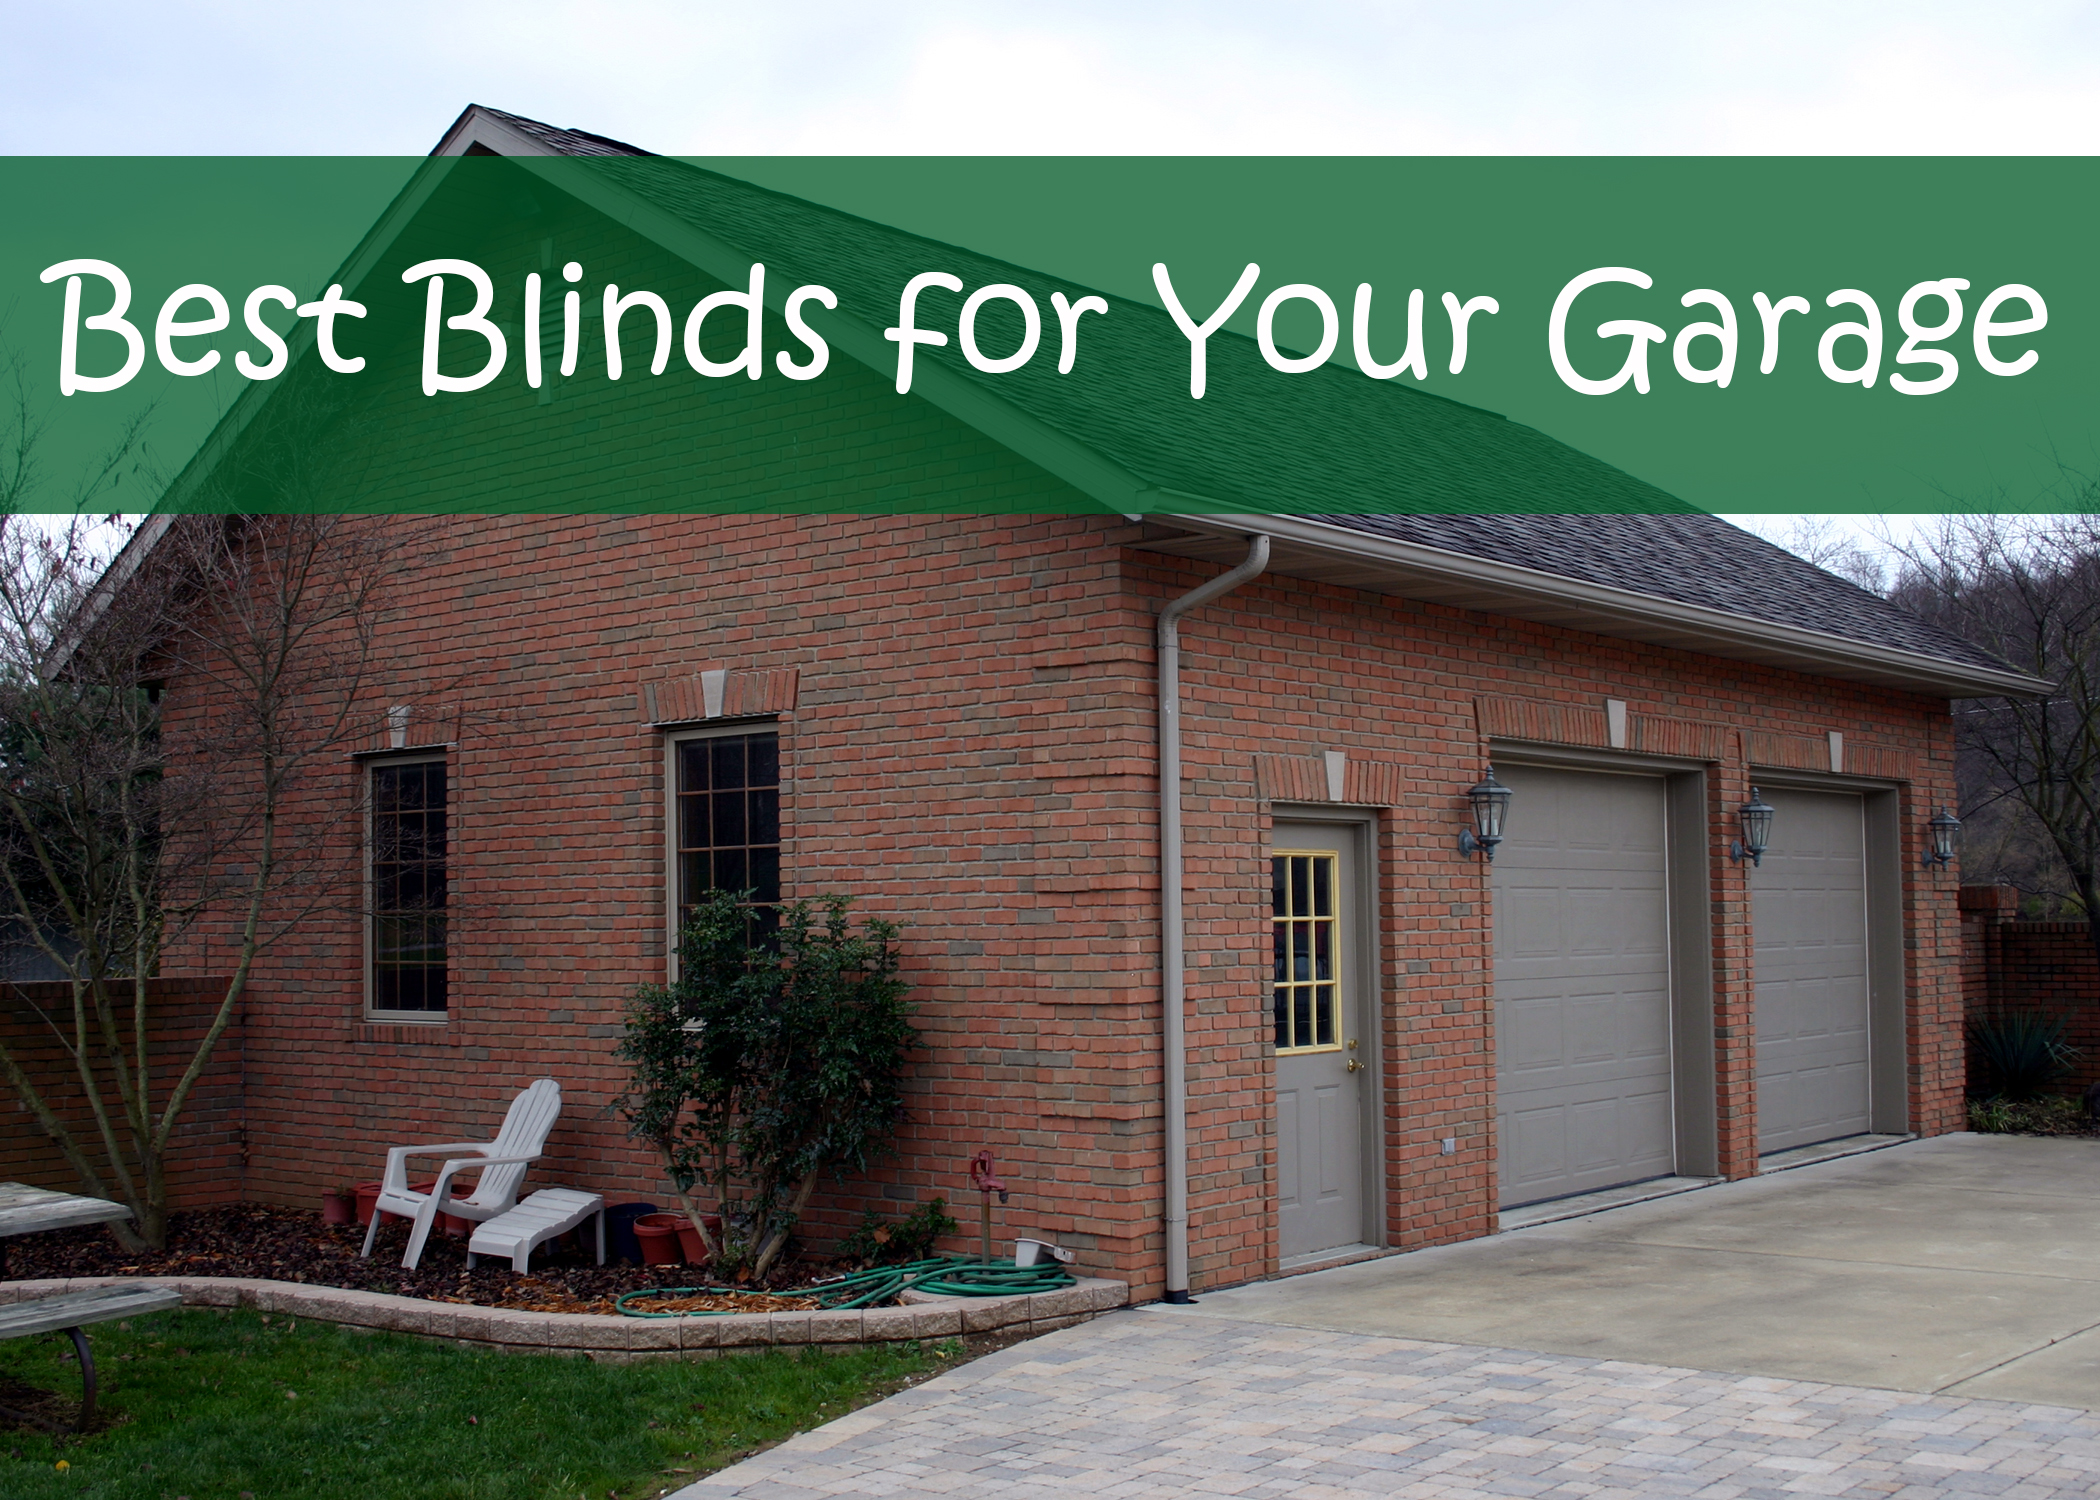 Best Blinds for Your Garage